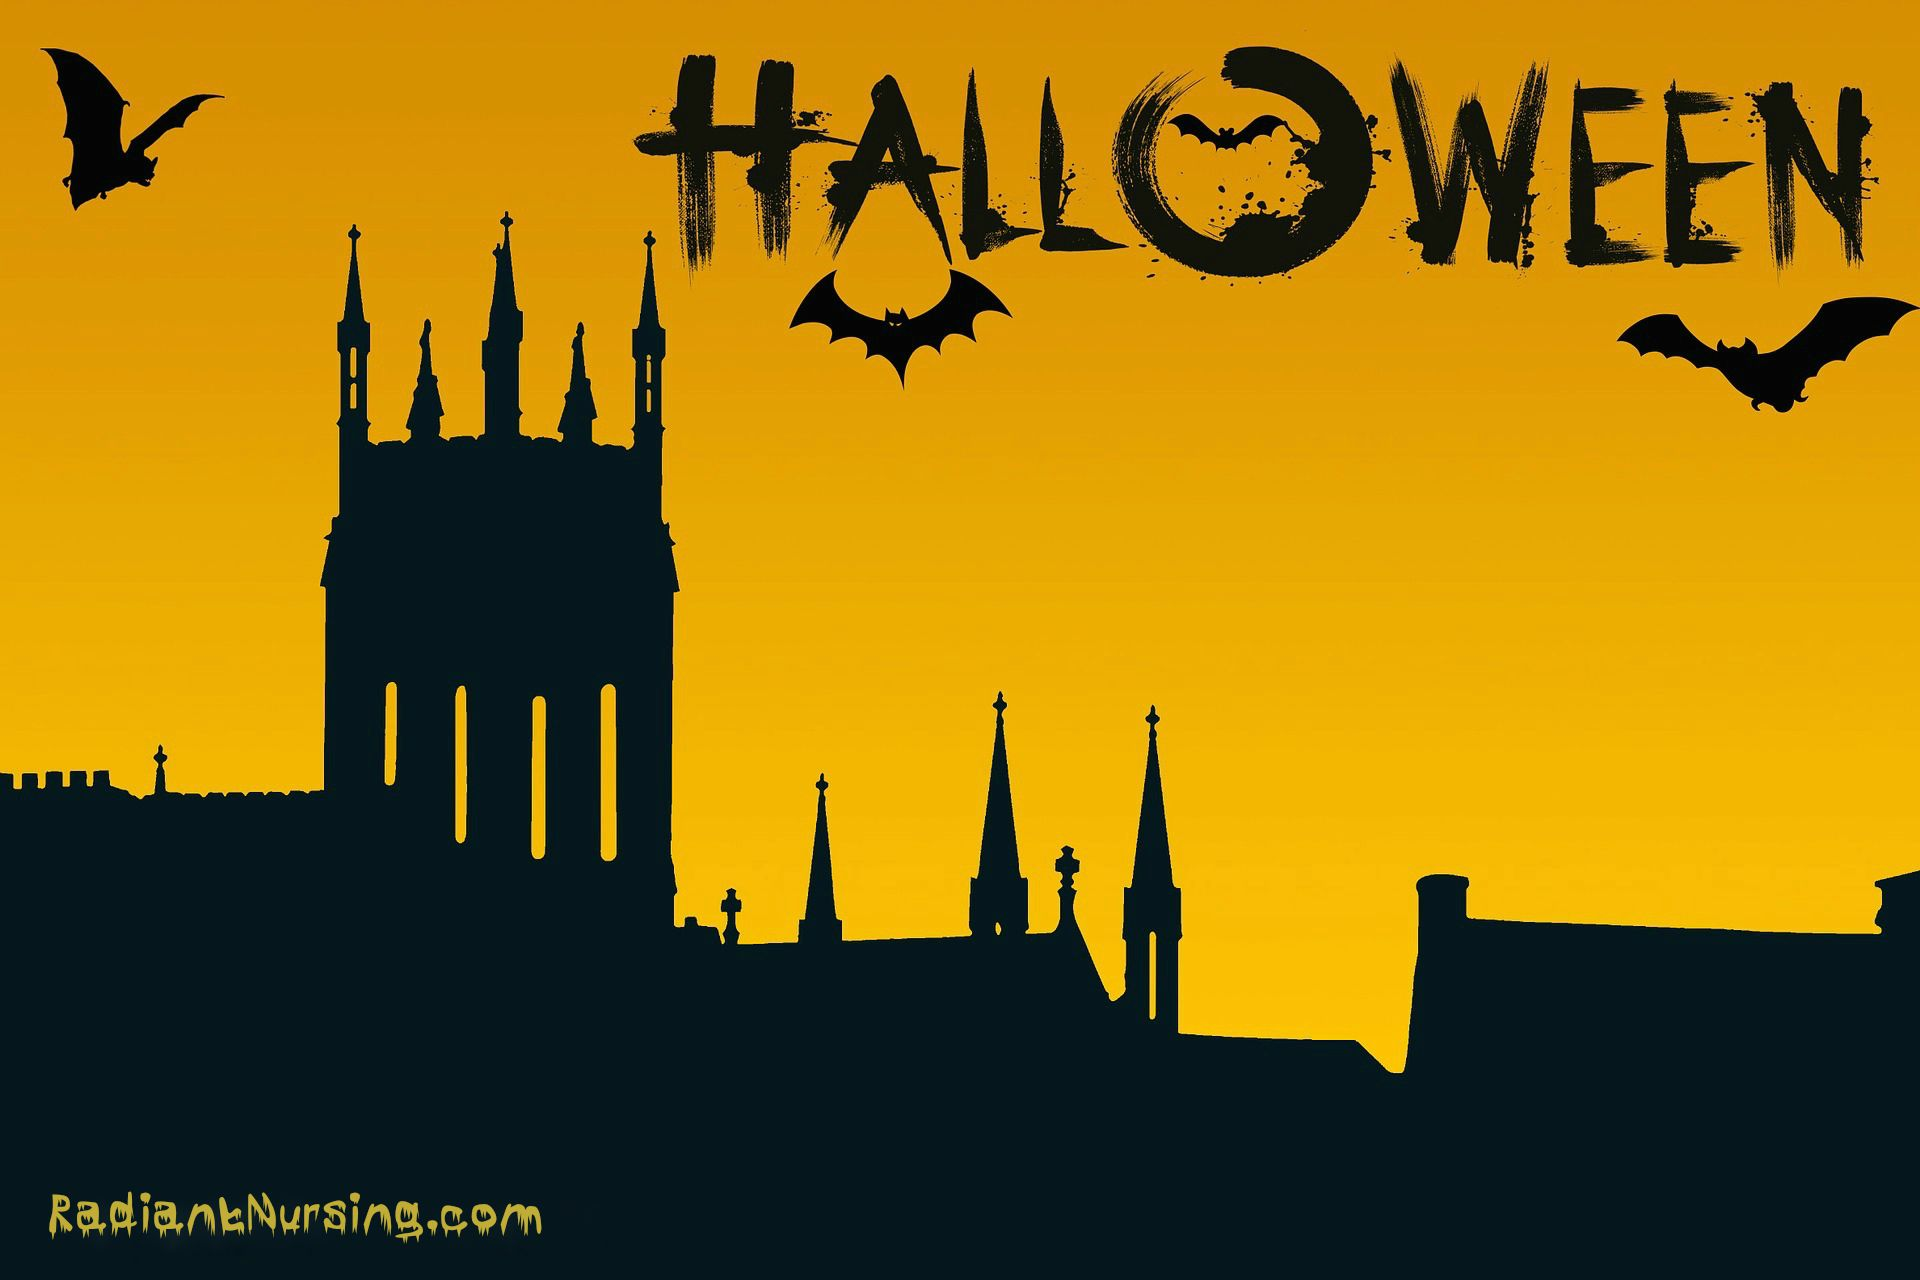 Halloween beckons and calls. Are you ready?